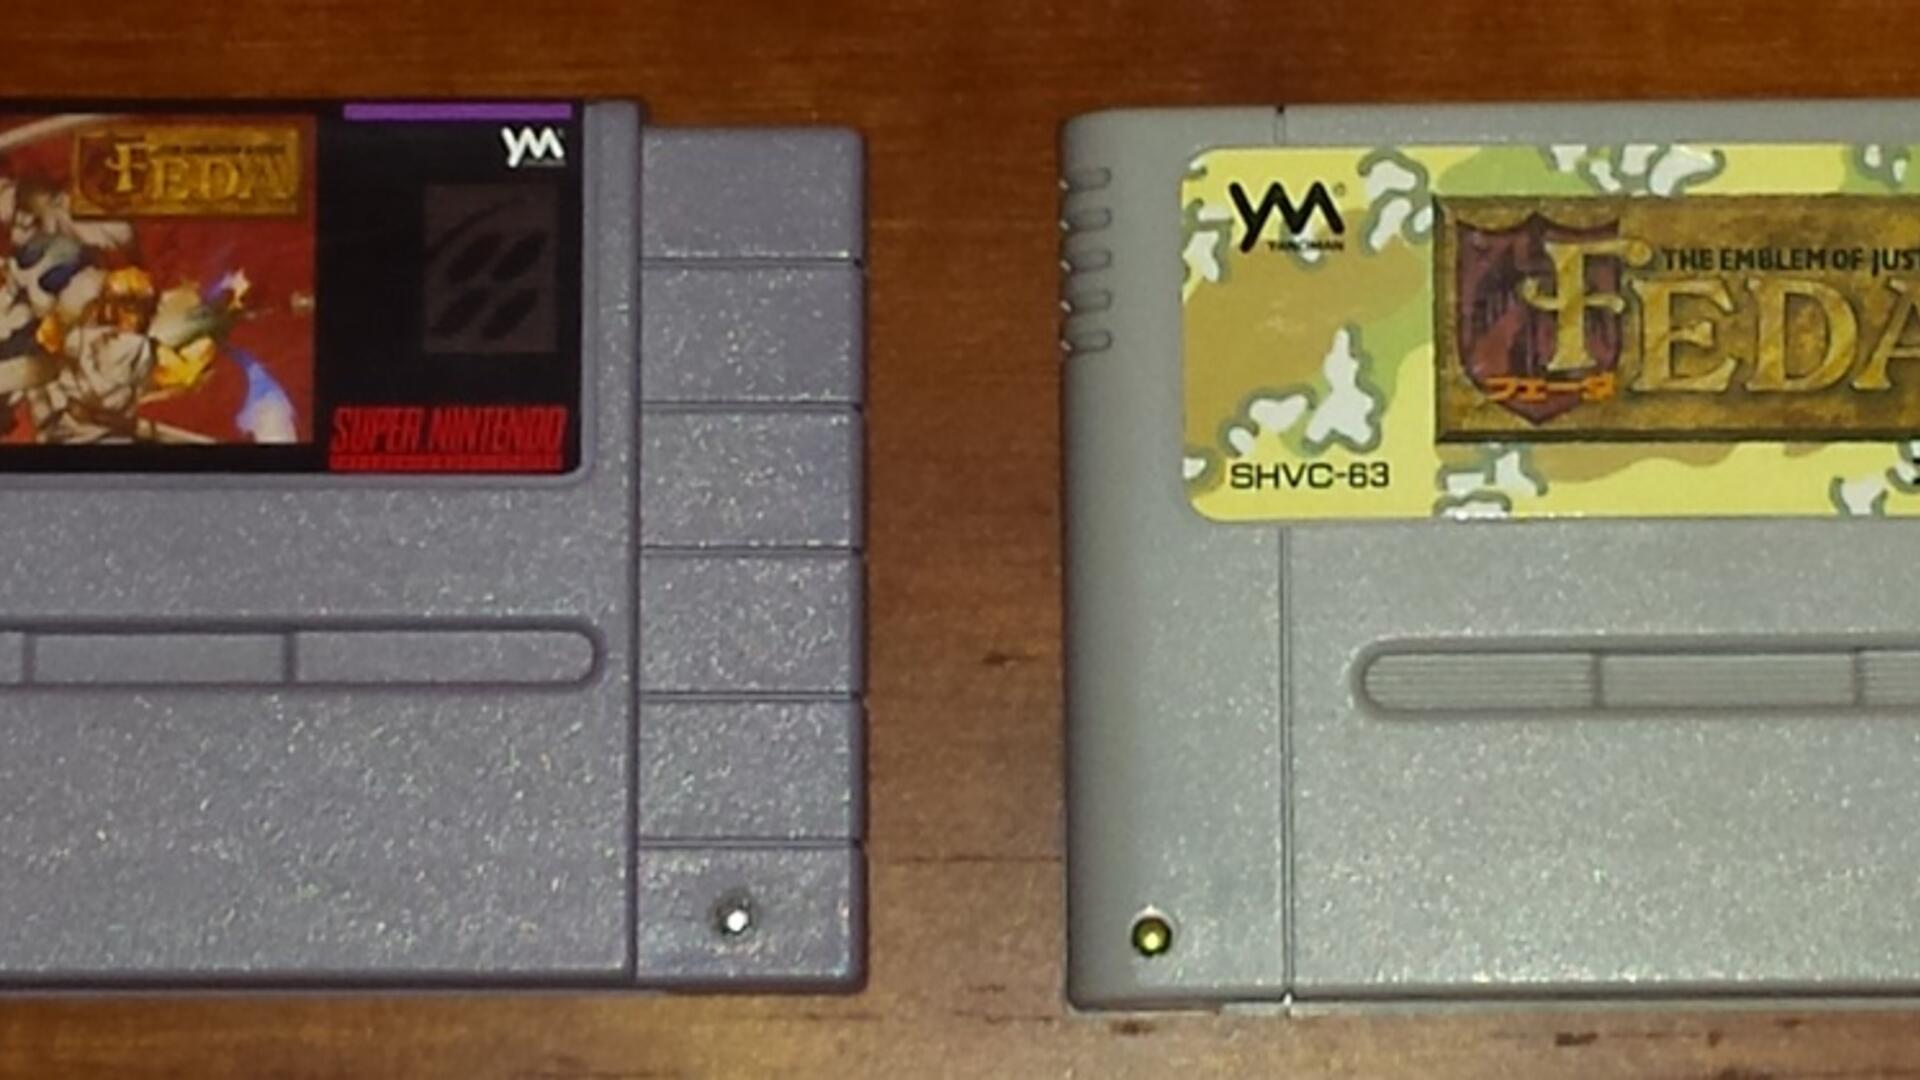 Reproduction Cartridges and Elegant Piracy